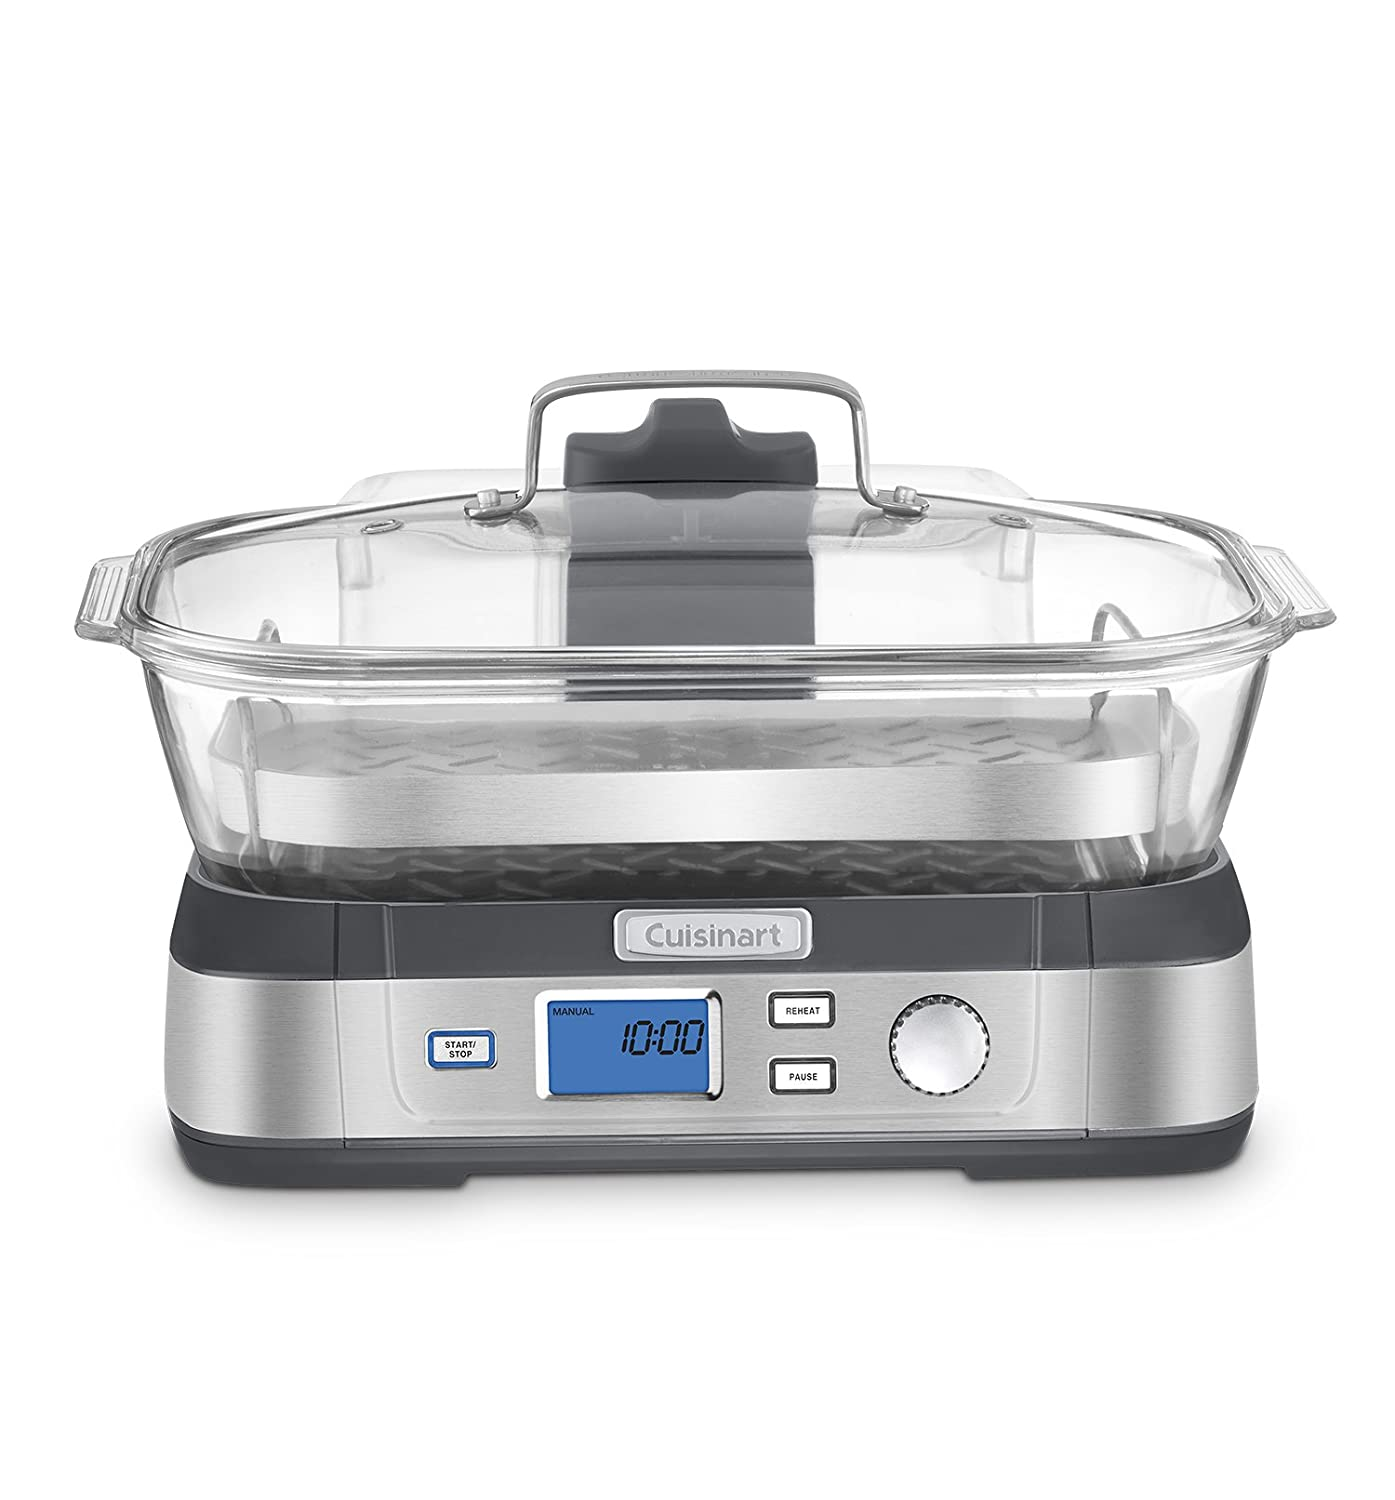 Cuisinart STM-1000 CookFresh Digital Glass Steamer, Stainless Steel